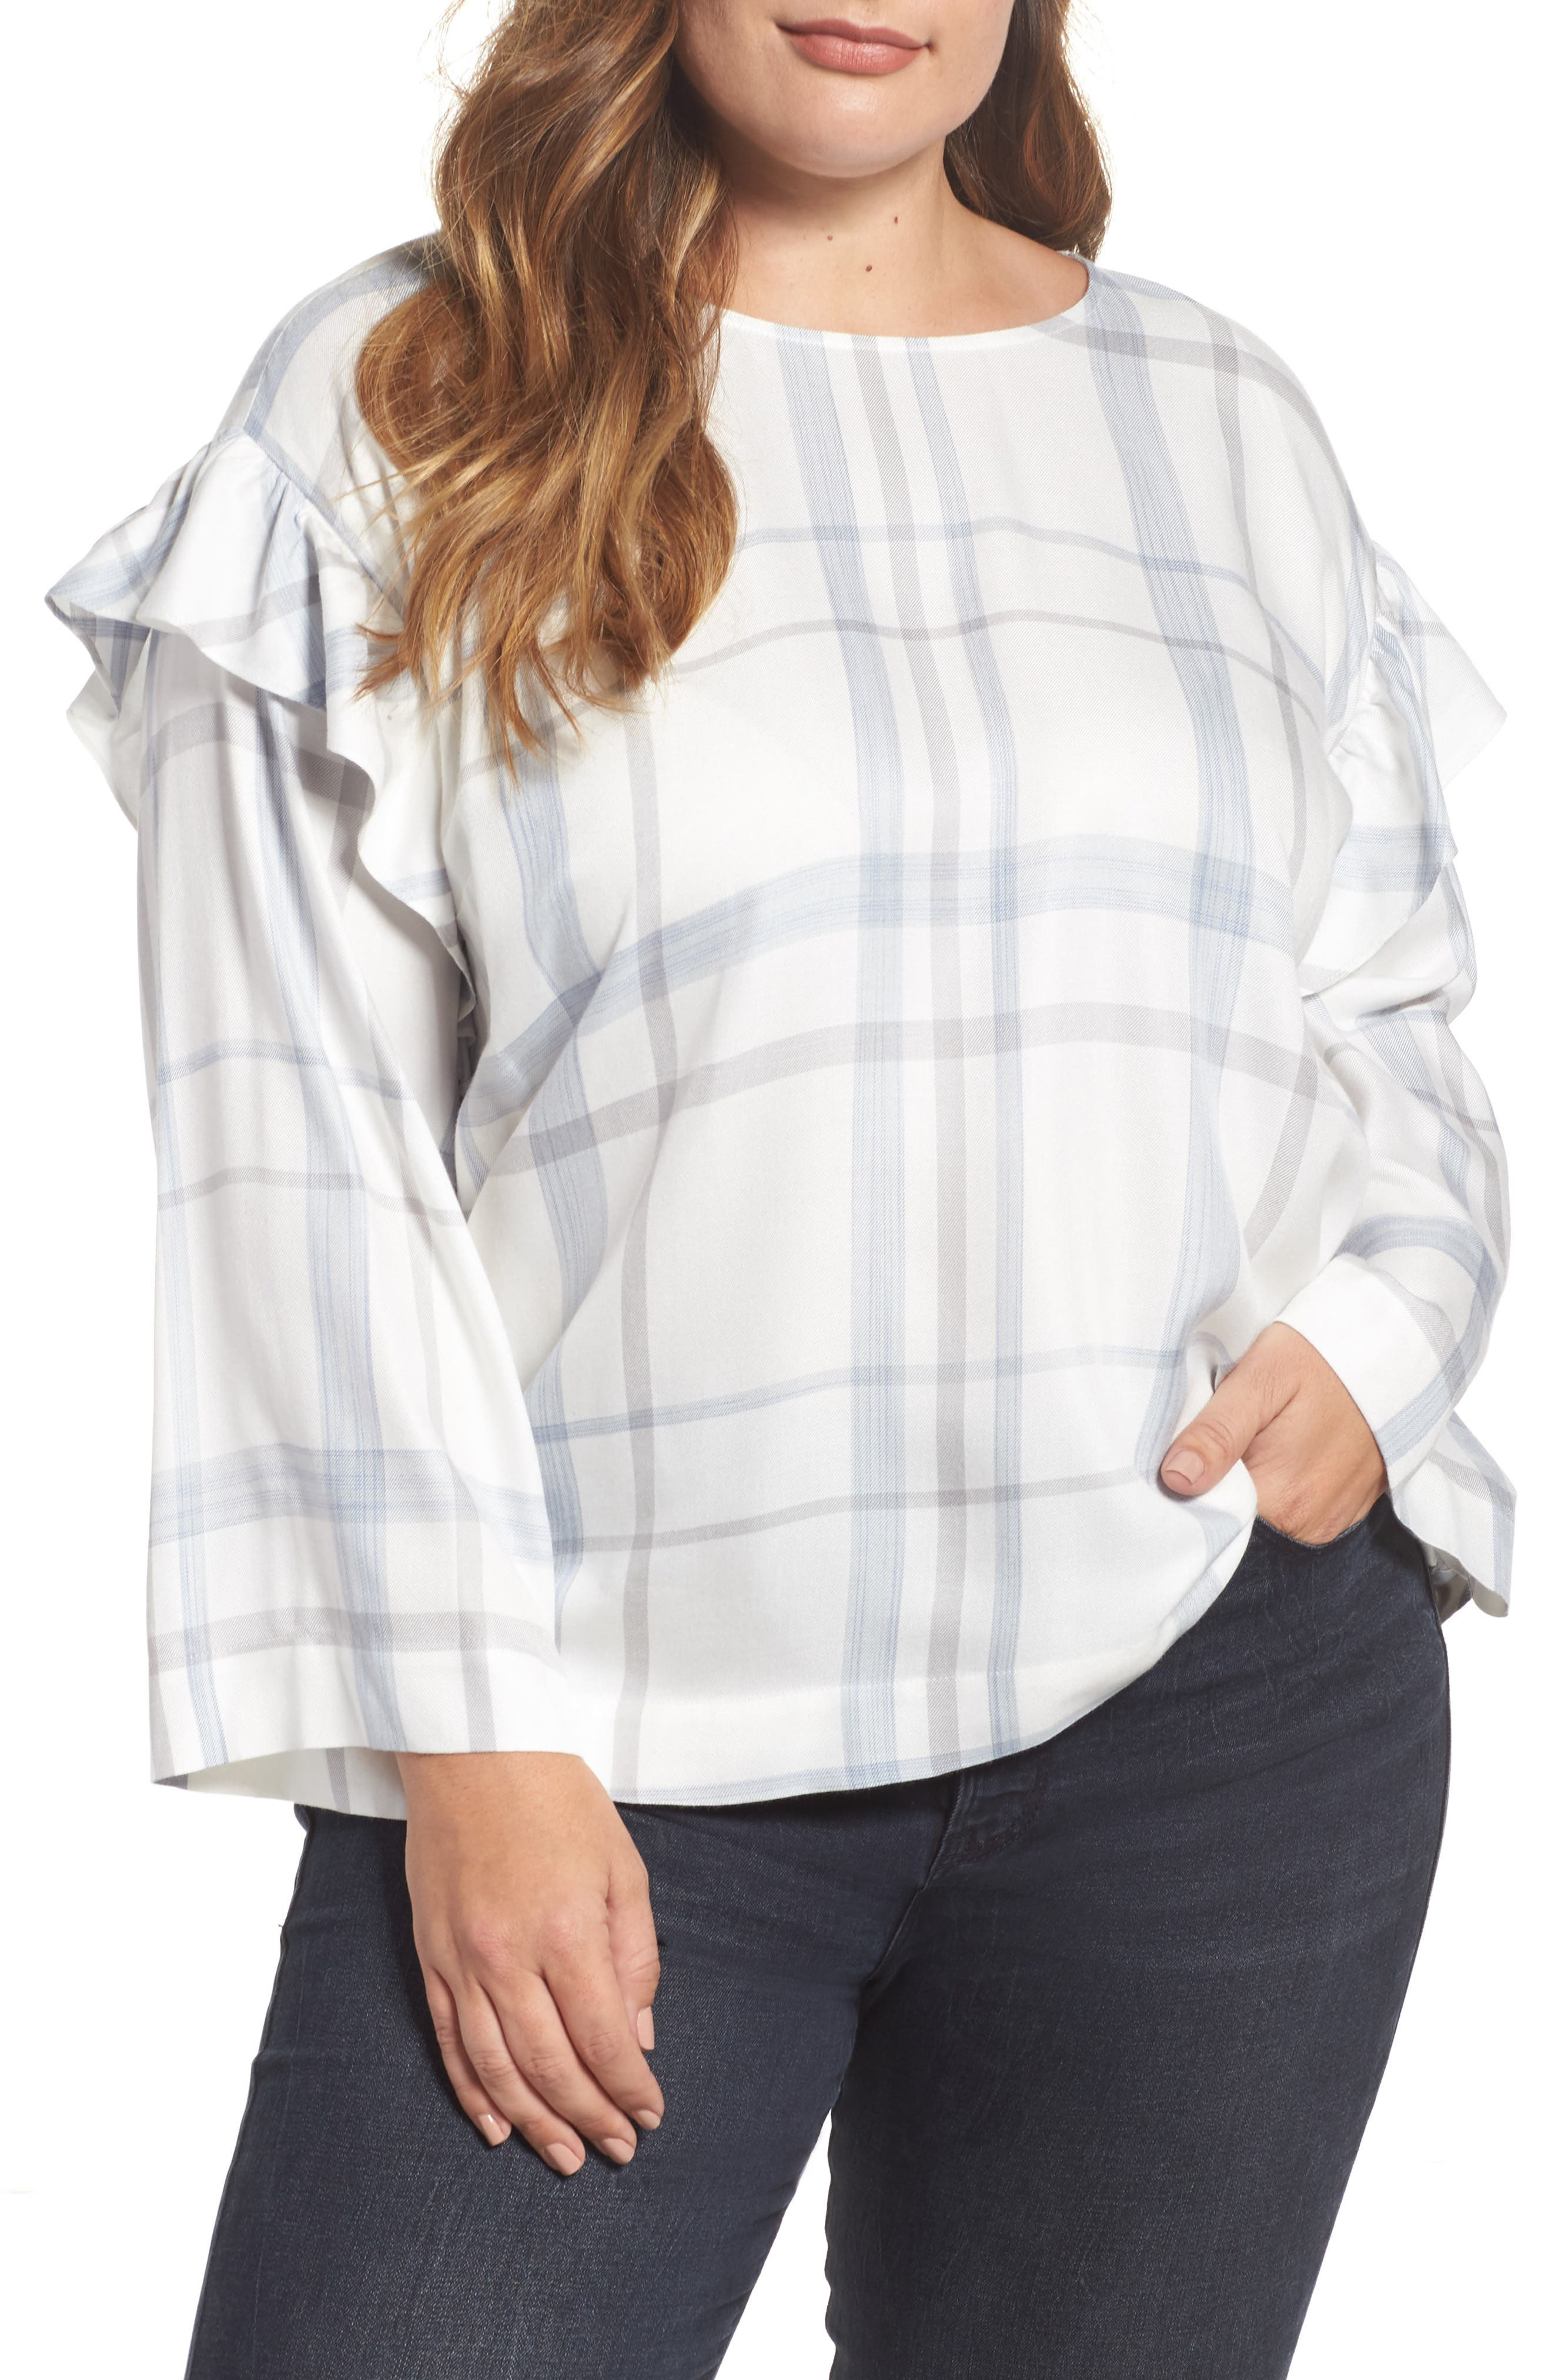 Alternate Image 1 Selected - Two by Vince Camuto Ruffed Sleeve Top (Plus Size)